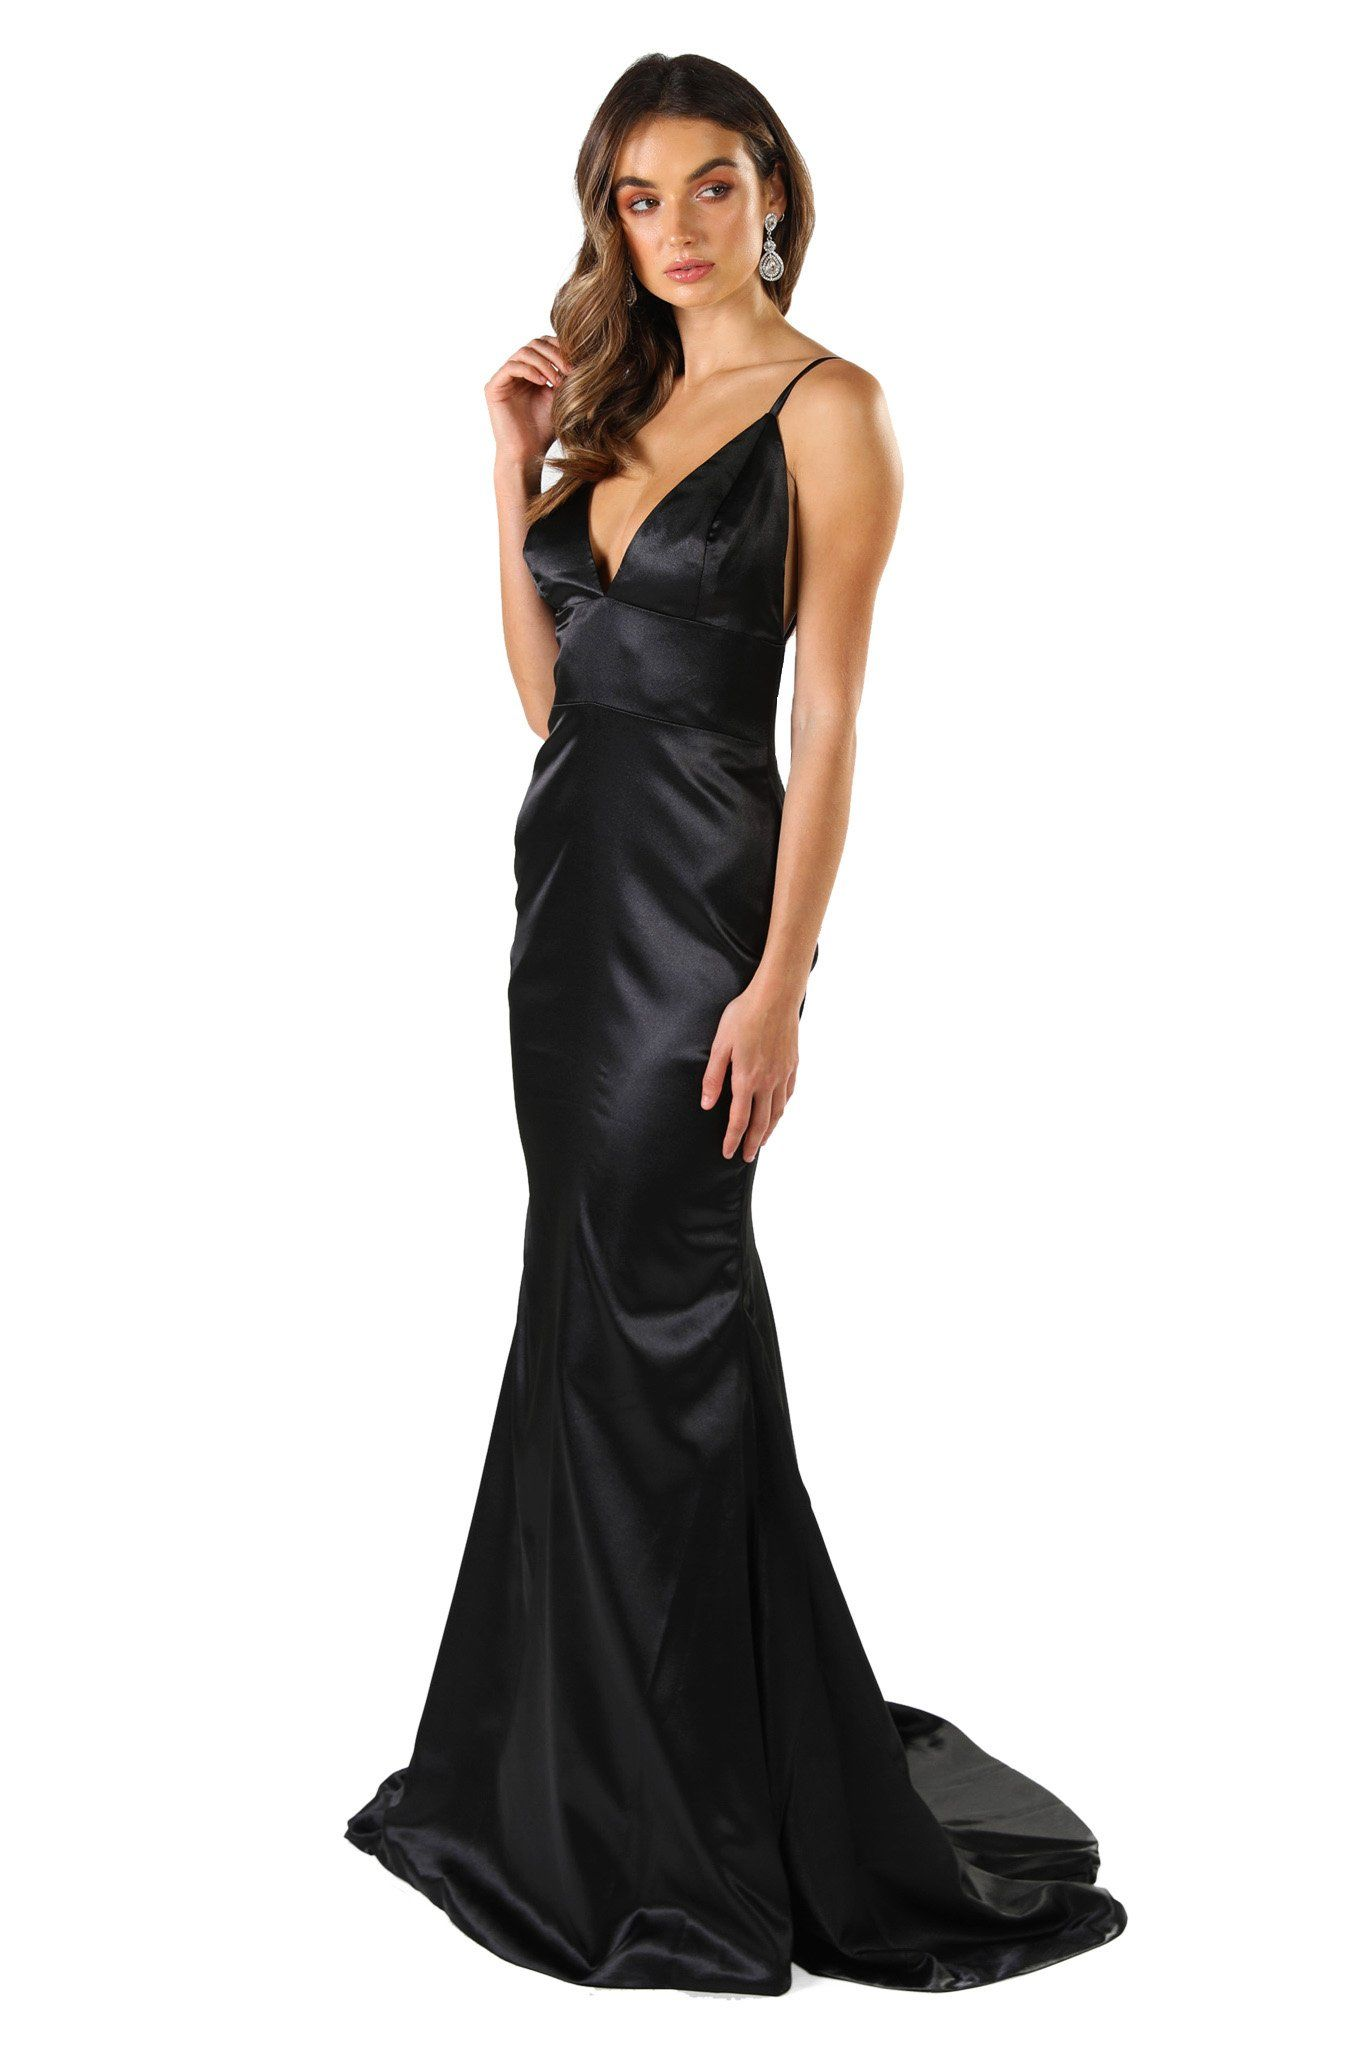 Black silk satin floor length formal evening sleeveless gown with V neckline, thin shoulder straps, backless design and long train